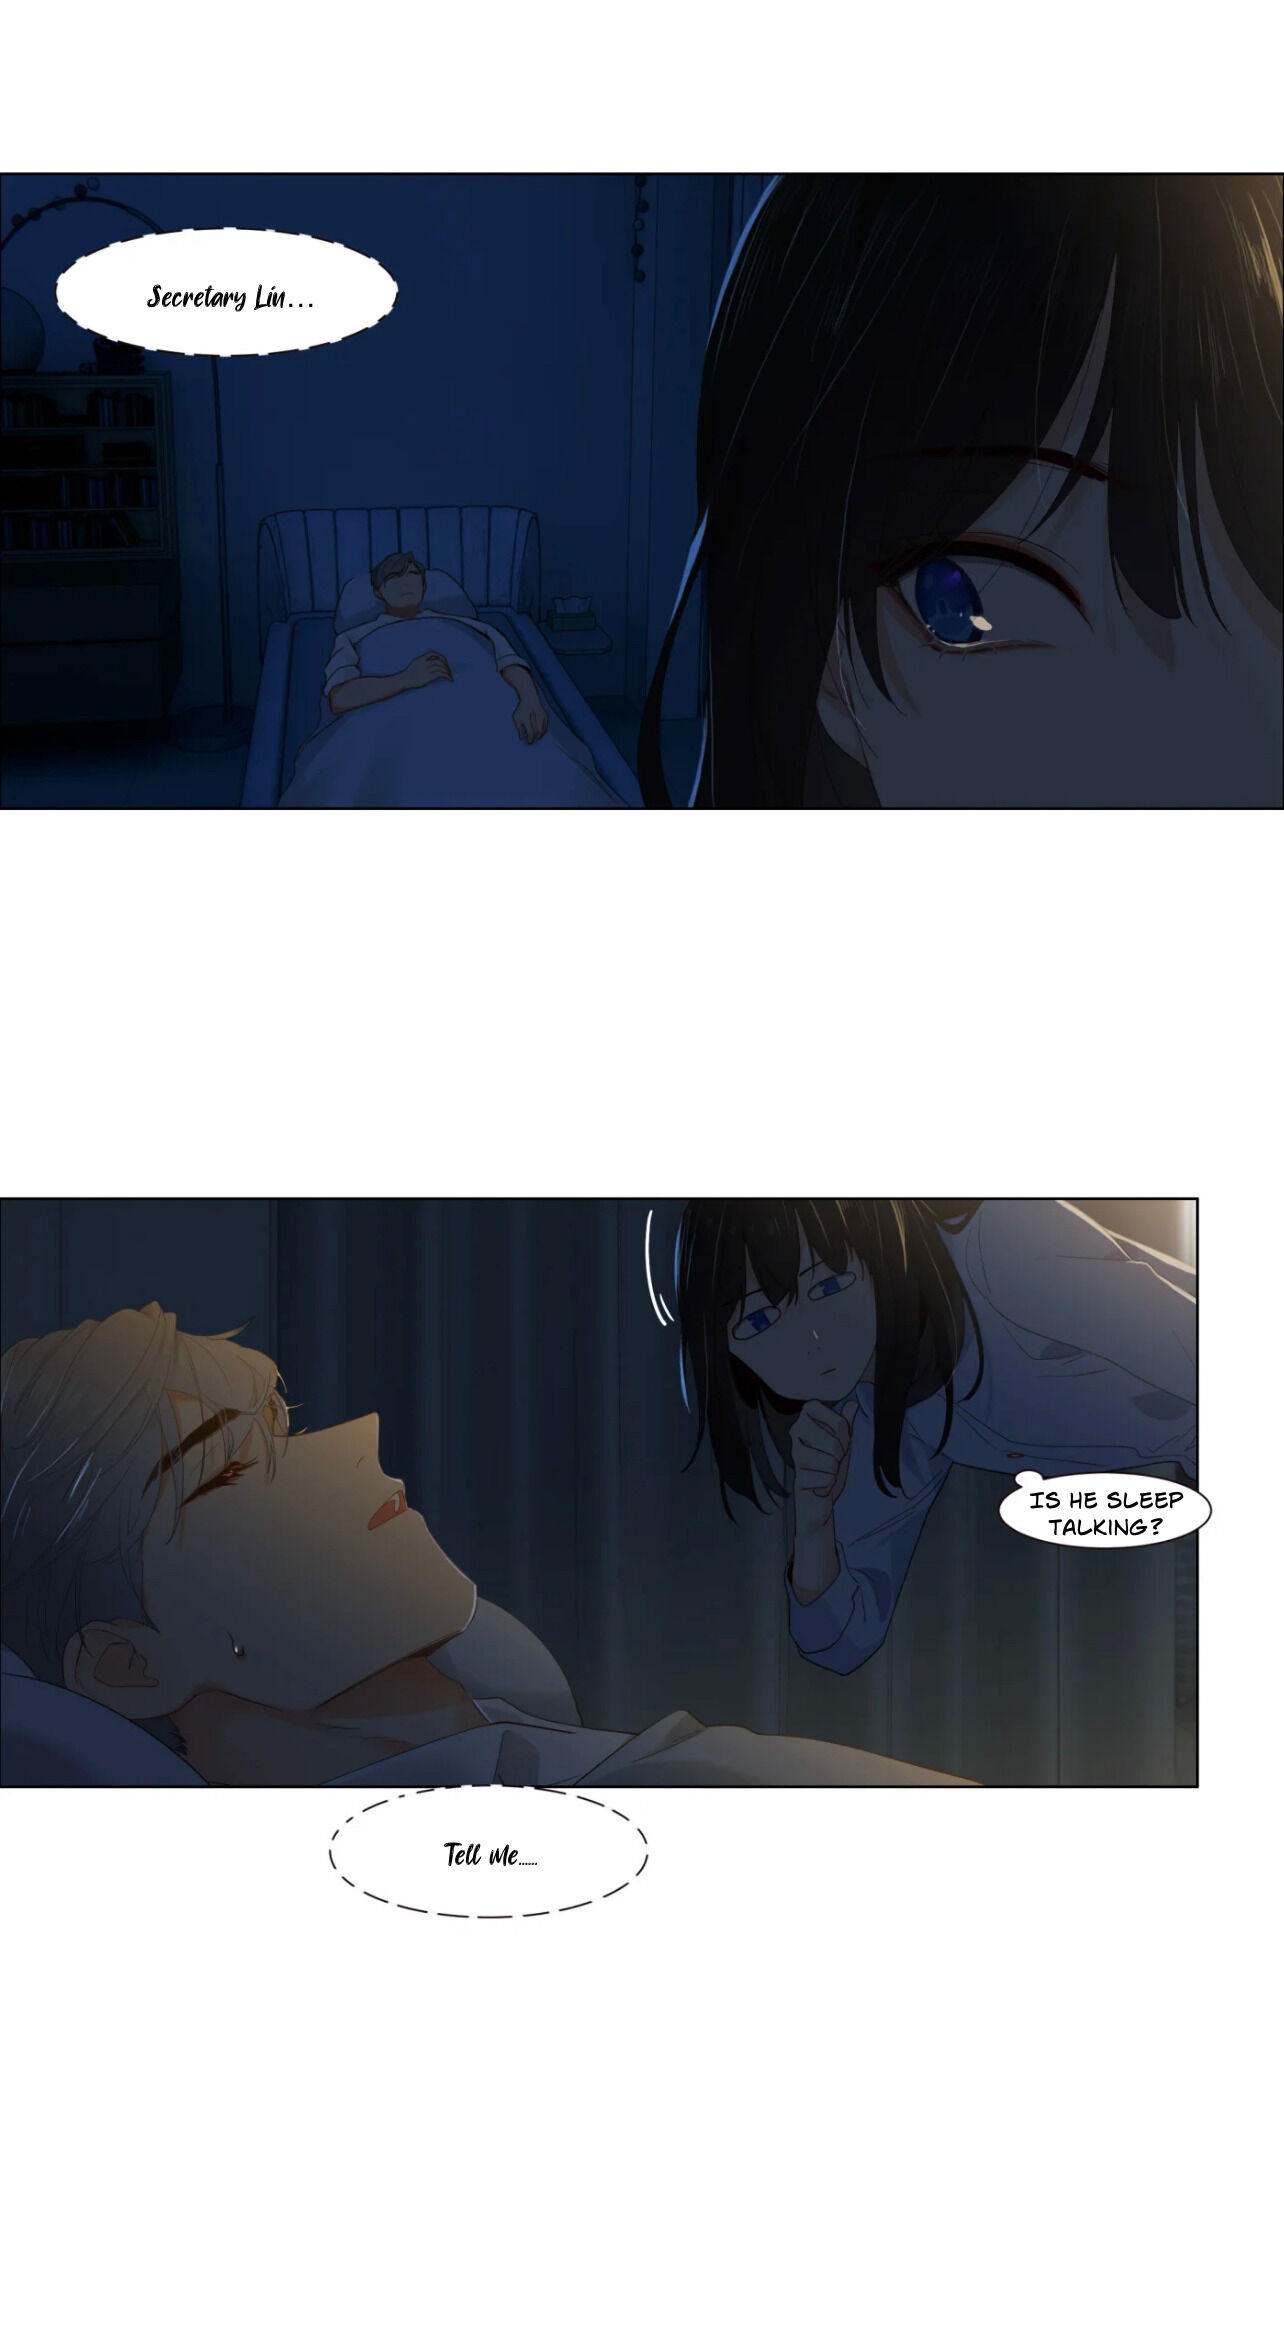 It'S Not That I Want To Wear Women'S Clothing Volume 4 Chapter 51 : Leave It To Him! page 5 - Mangakakalots.com